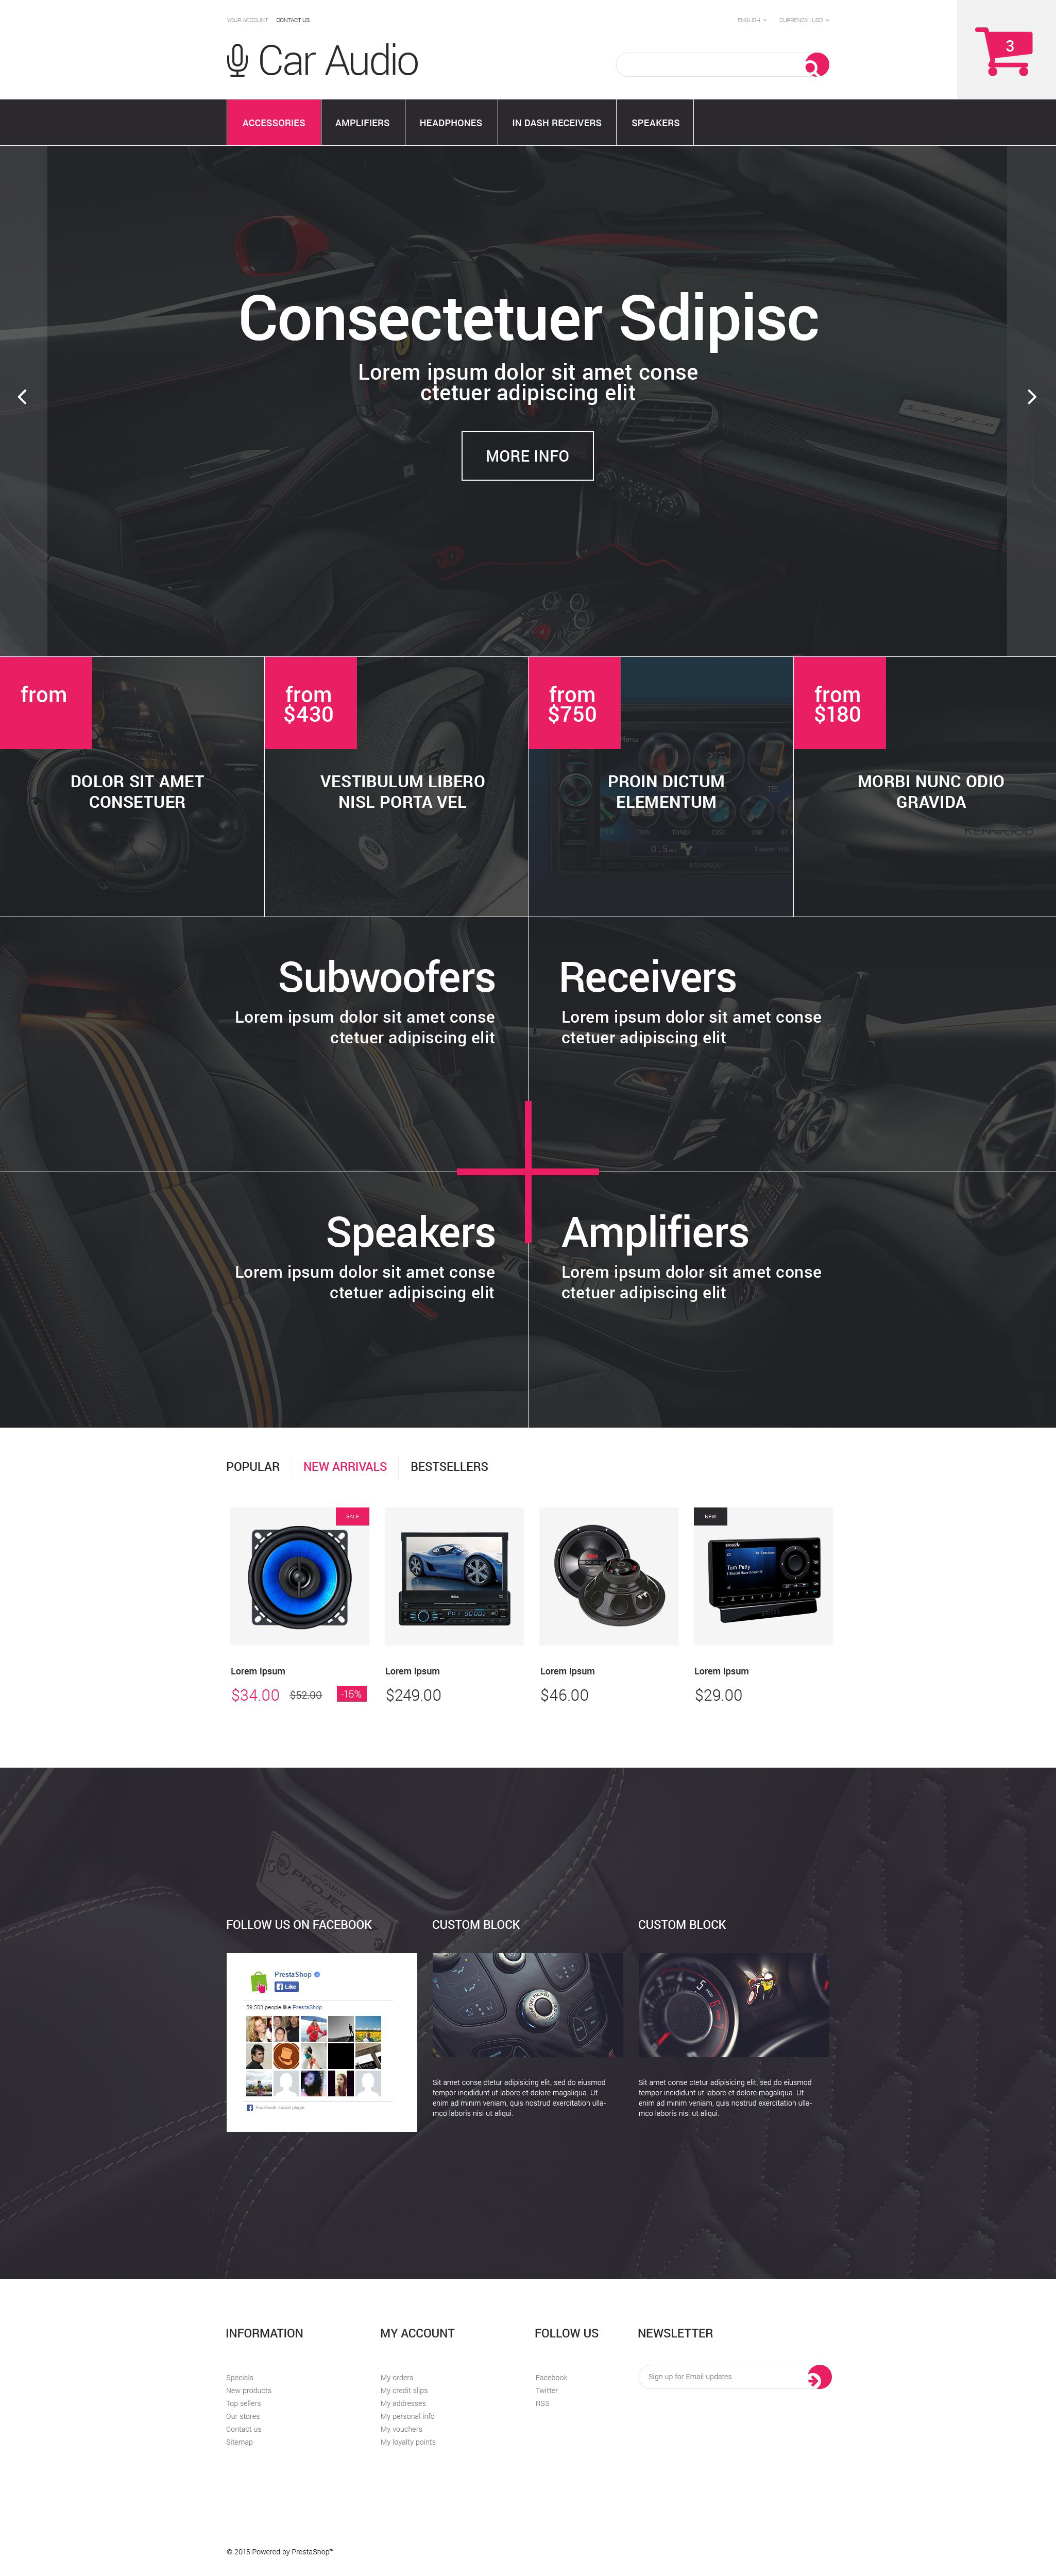 The Car Audio Online Store PrestaShop Design 53686, one of the best PrestaShop themes of its kind (cars), also known as car audio online store PrestaShop template, shop PrestaShop template, shopping cart PrestaShop template, virtuemart PrestaShop template, products PrestaShop template, music PrestaShop template, pioneer PrestaShop template, player PrestaShop template, cd PrestaShop template, dvd-rom PrestaShop template, sd PrestaShop template, card PrestaShop template, usb PrestaShop template, dj PrestaShop template, mp3 PrestaShop template, sound PrestaShop template, electronics and related with car audio online store, shop, shopping cart, virtuemart, products, music, pioneer, player, cd, dvd-rom, sd, card, usb, dj, mp3, sound, electronics, etc.